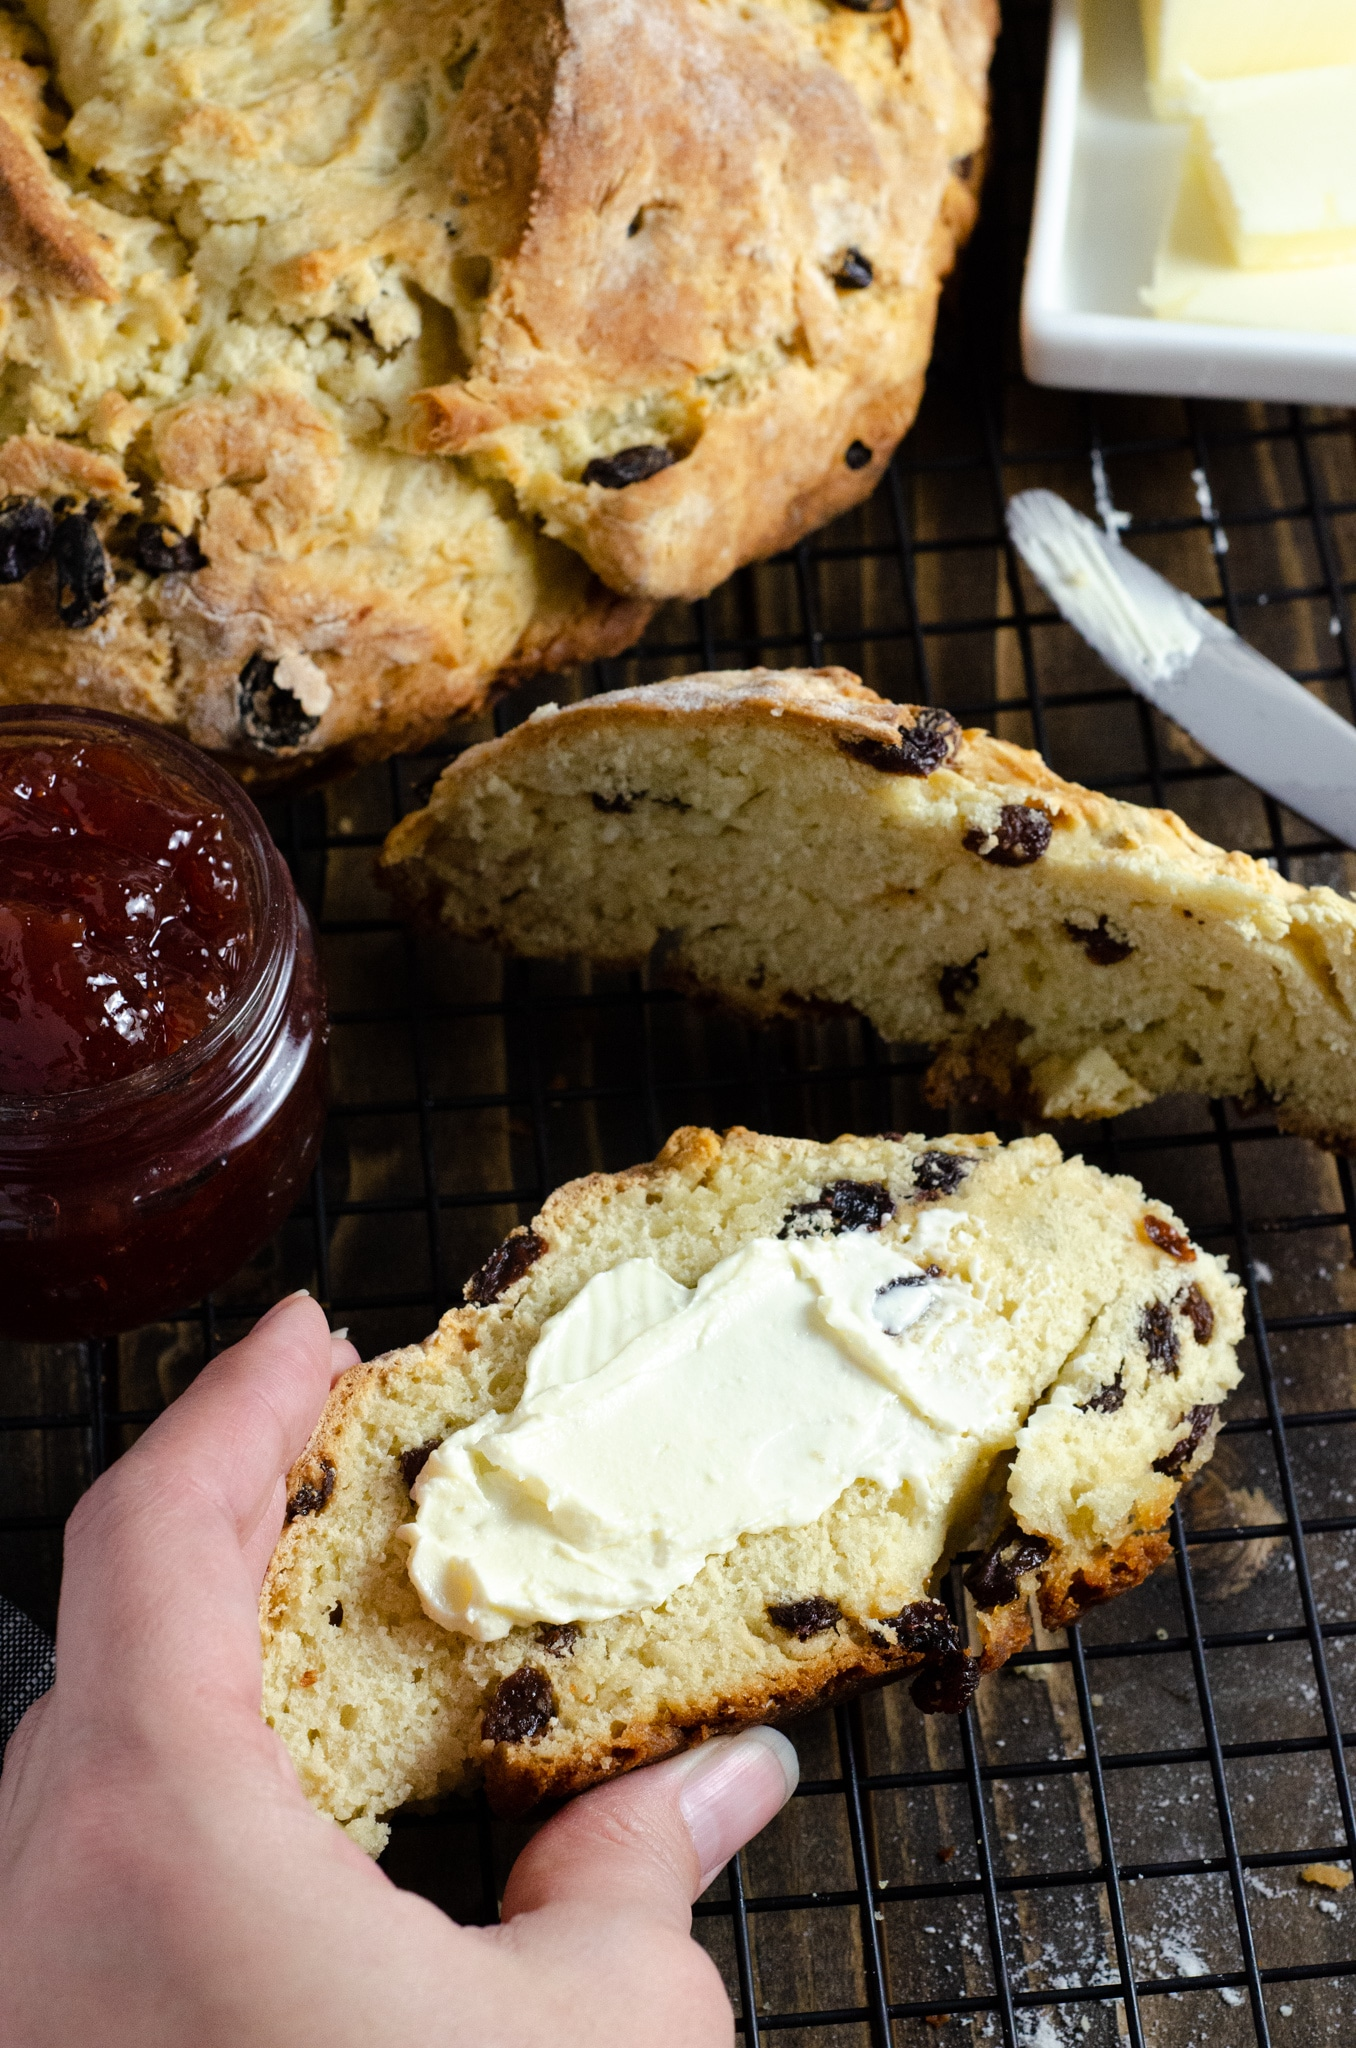 Irish Soda Bread with Butter. This Irish Soda Bread is a quick and easy bread recipe you can whip together and spoil your family with. Also known as quick bread, It's a no yeast bread recipe that will take over your home with the sweet smell of fresh-baked bread.